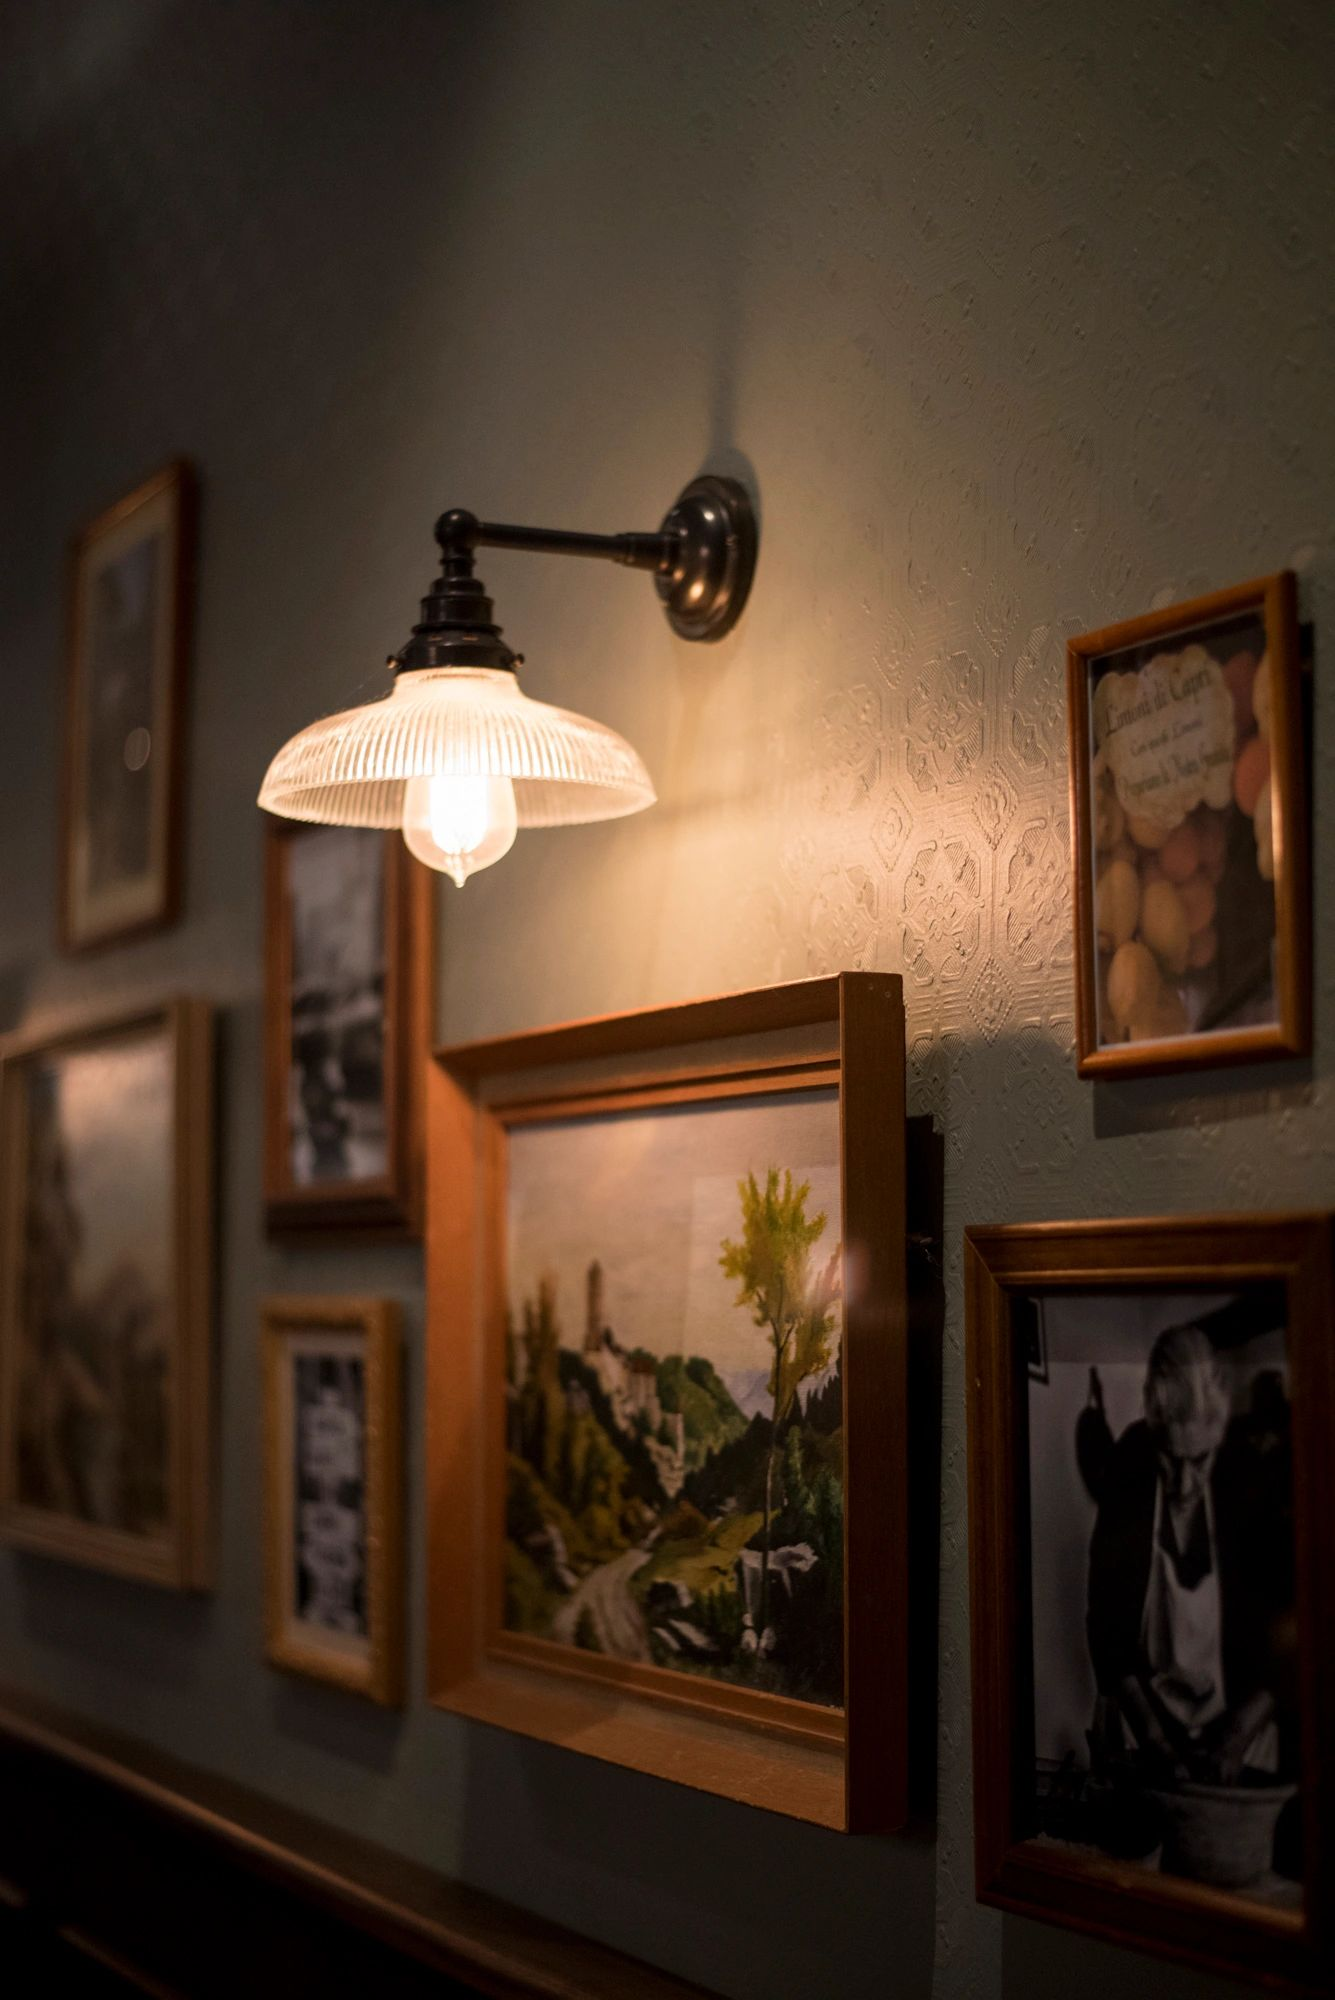 Old rustic Italian decor images cover our main dining room.